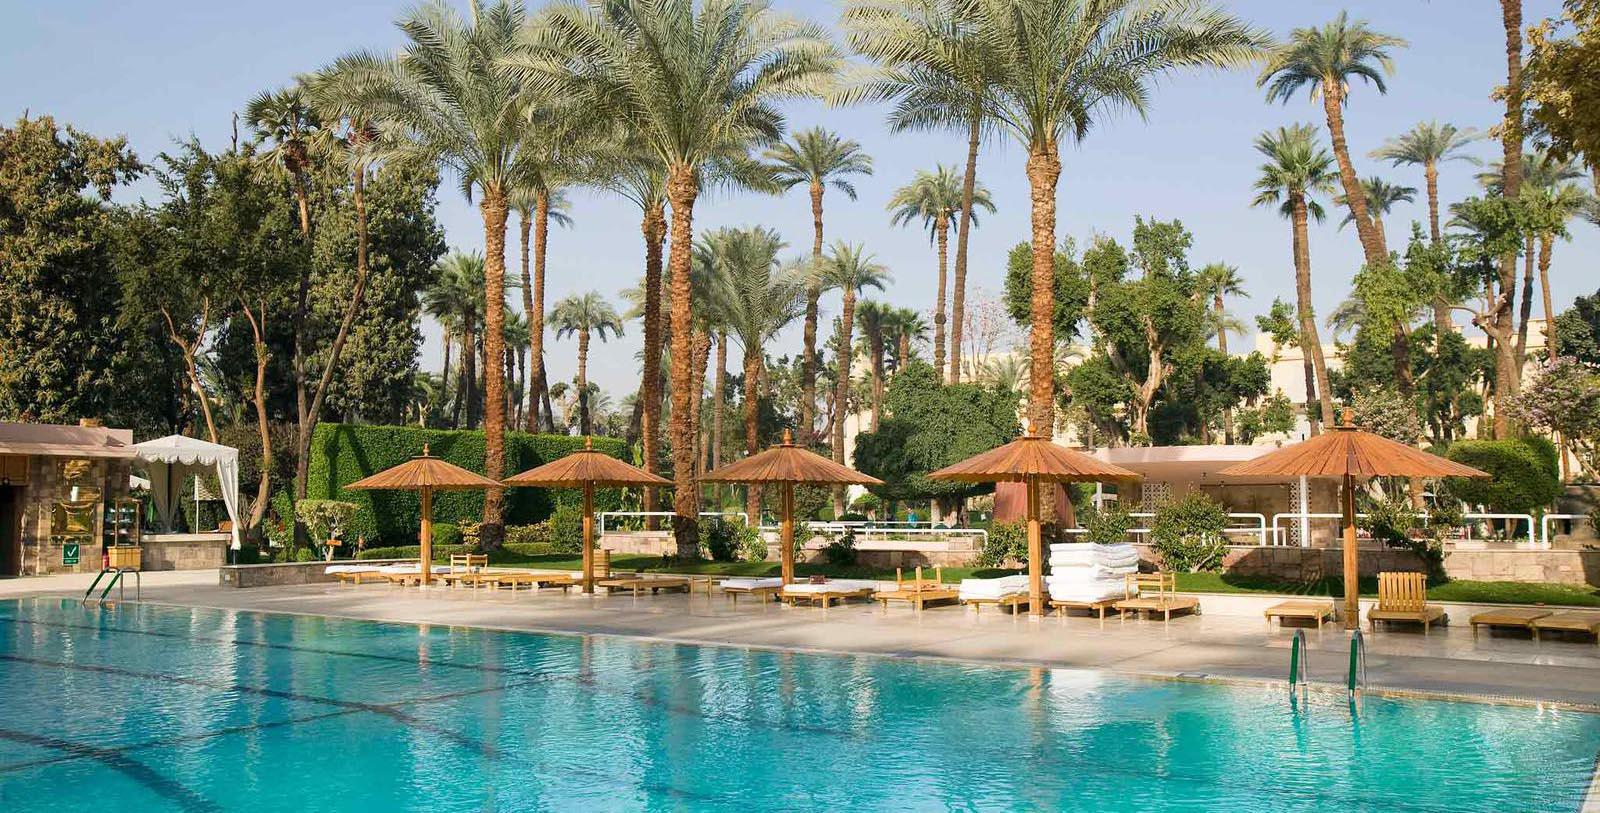 Image of Outdoor Pool at Sofitel Winter Palace Luxor, 1886, Member of Historic Hotels Worldwide, in Luxor, Egypt, Explore